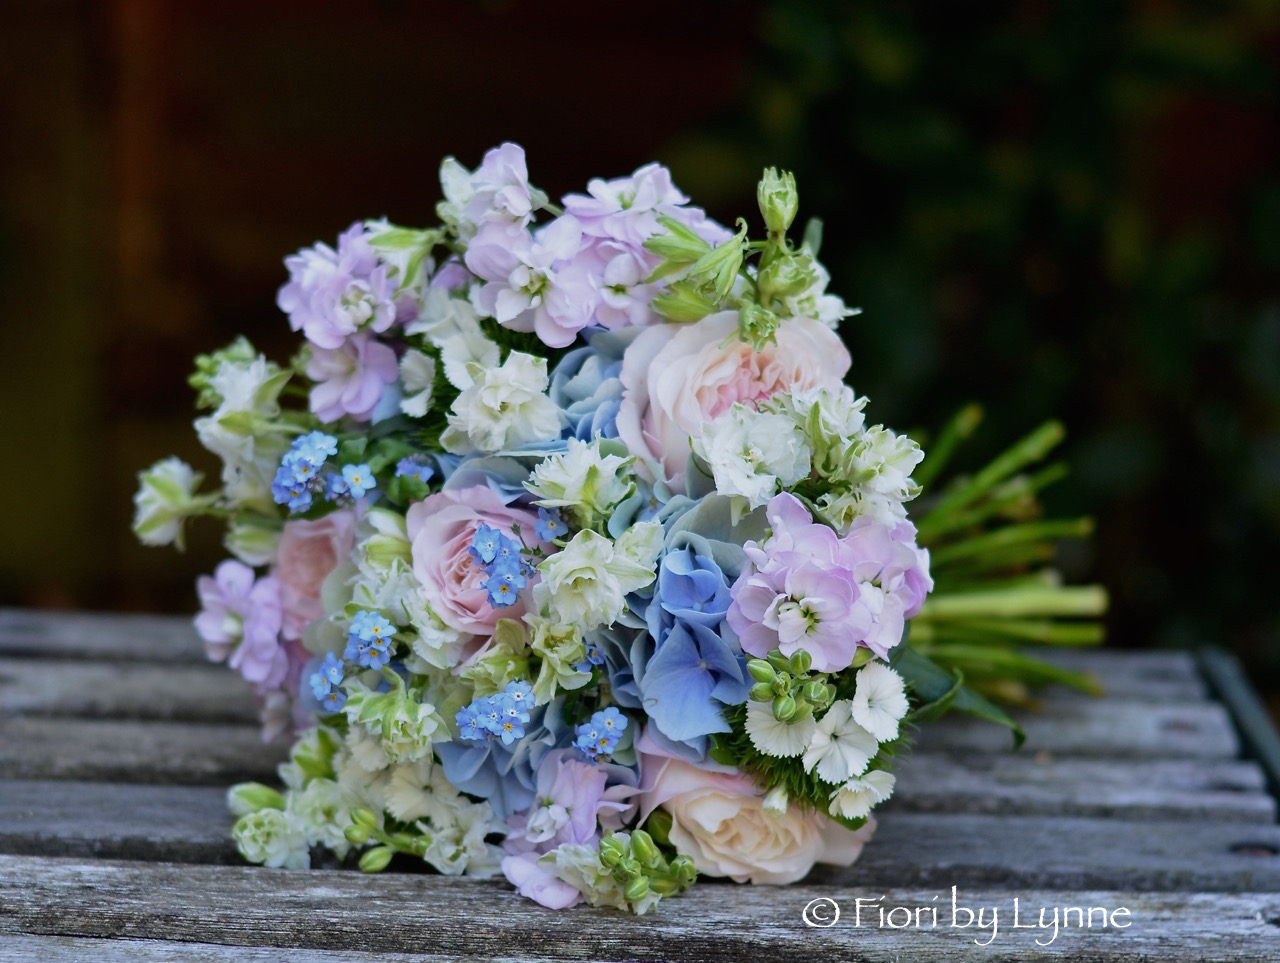 Wedding flowers blog claires english summer garden style flowers bridesmaids posy of english summer garden style flowers in soft pinks and blues using garden roses hydrangeas stocks larkspur forget me not and sweet izmirmasajfo